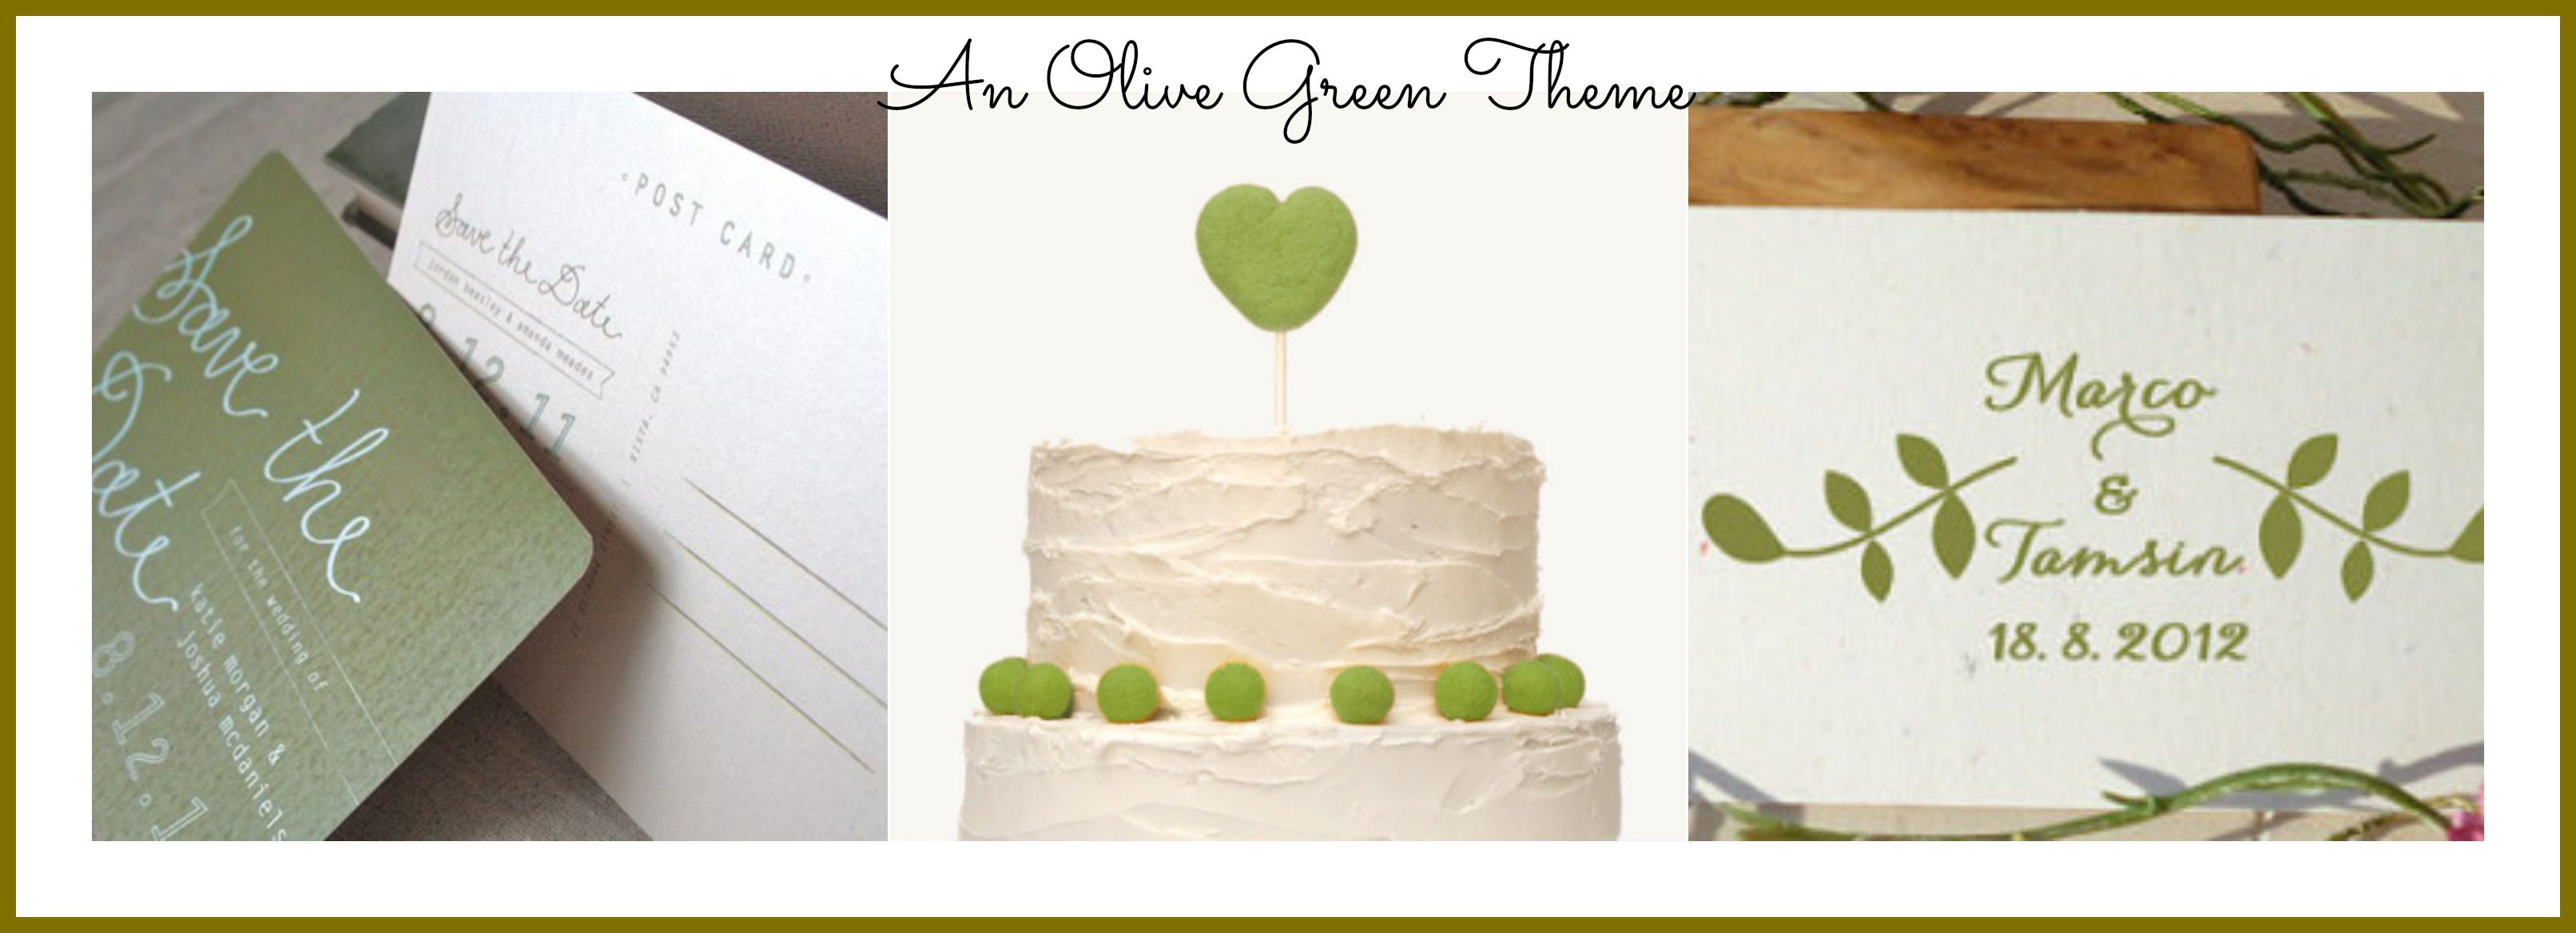 Ideas For An Olive Green Wedding - Rustic Wedding Chic